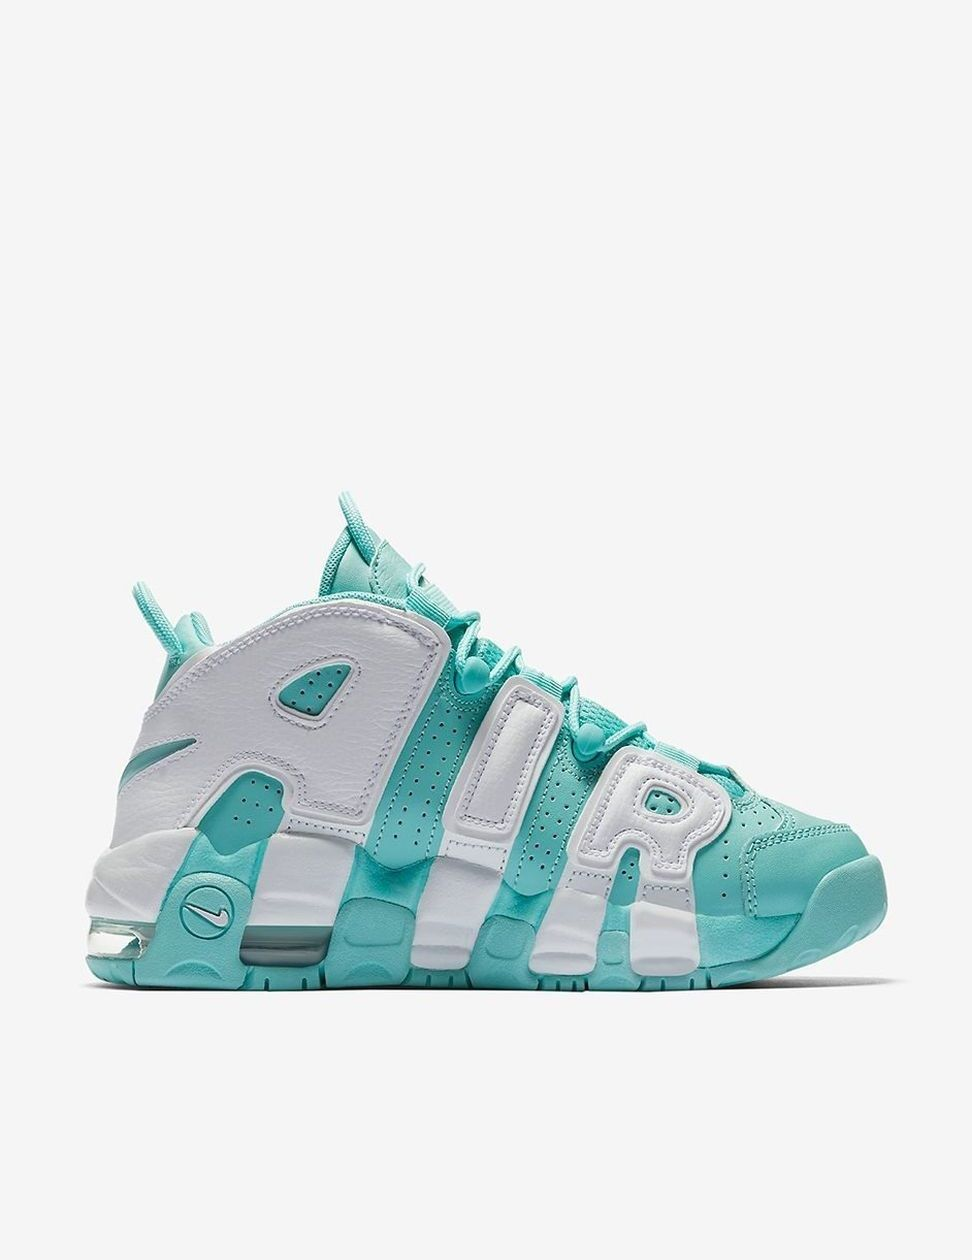 2017 NikeAir More Uptempo Gs Island Green And White Outlet